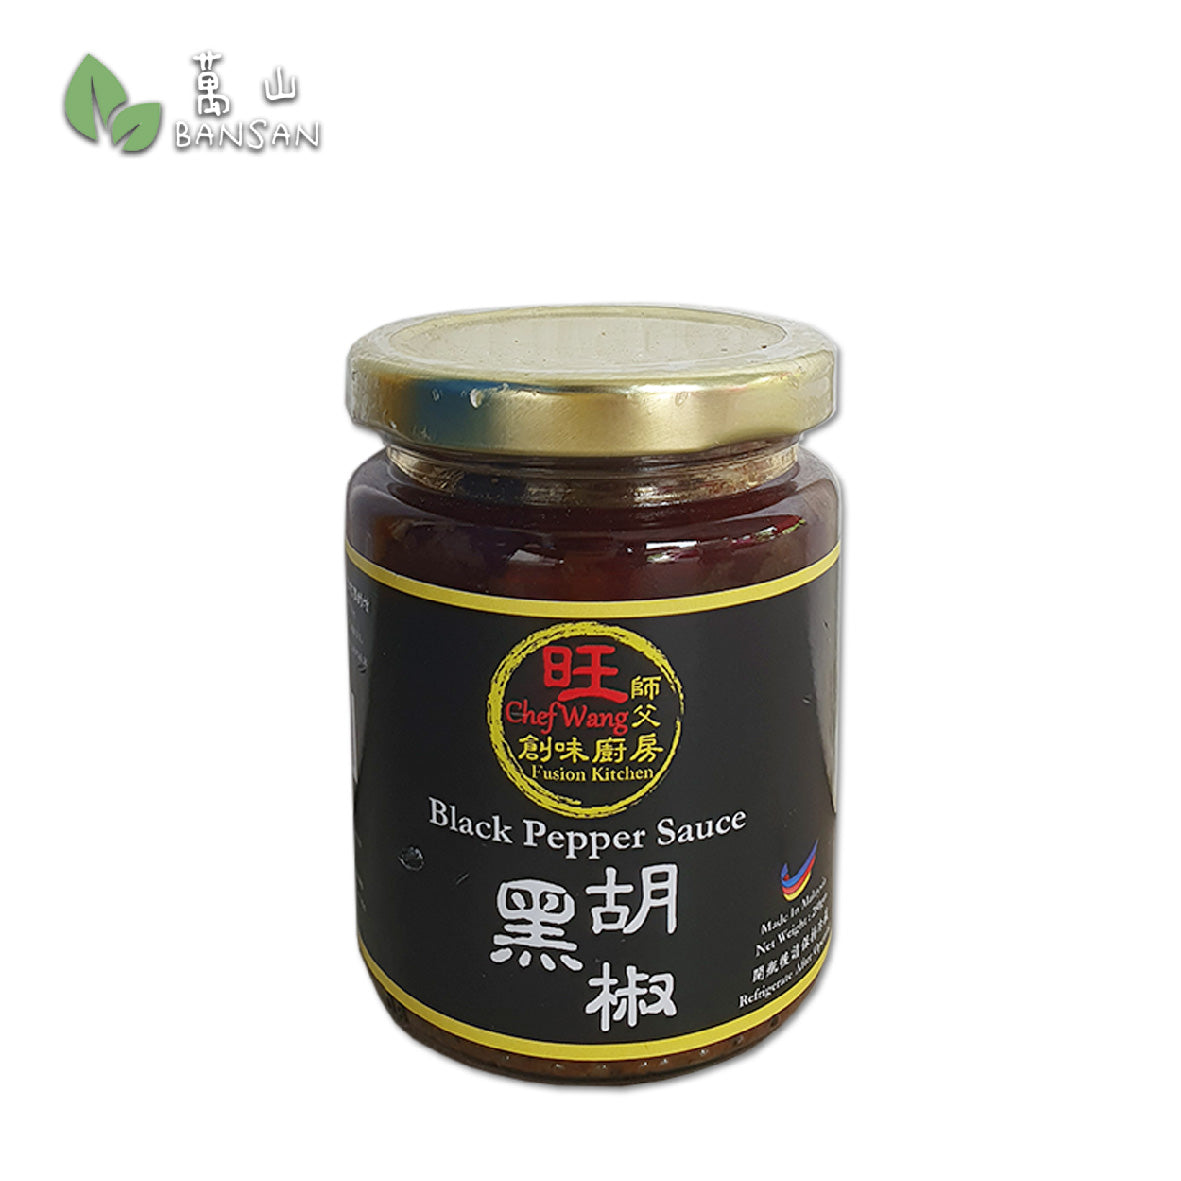 Chef Wang Black Pepper Sauce 魔法黑胡椒 (250g) - Bansan Penang